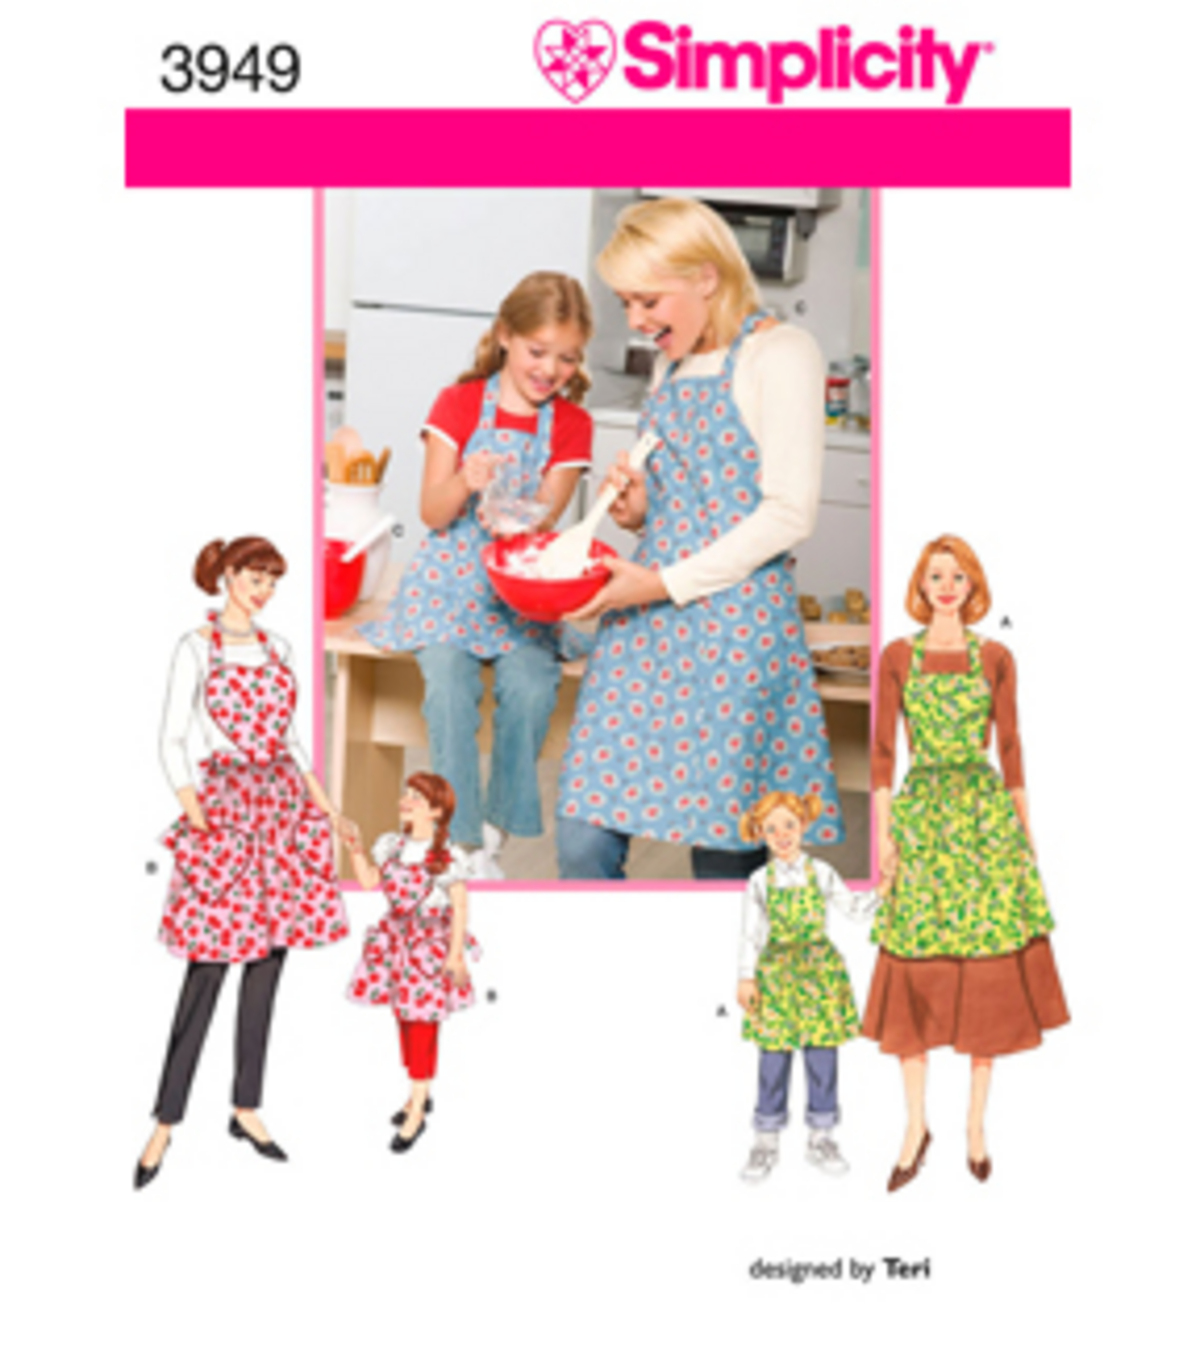 Simplicity Pattern 3949A S-M-L / S--Simplicity Crafts